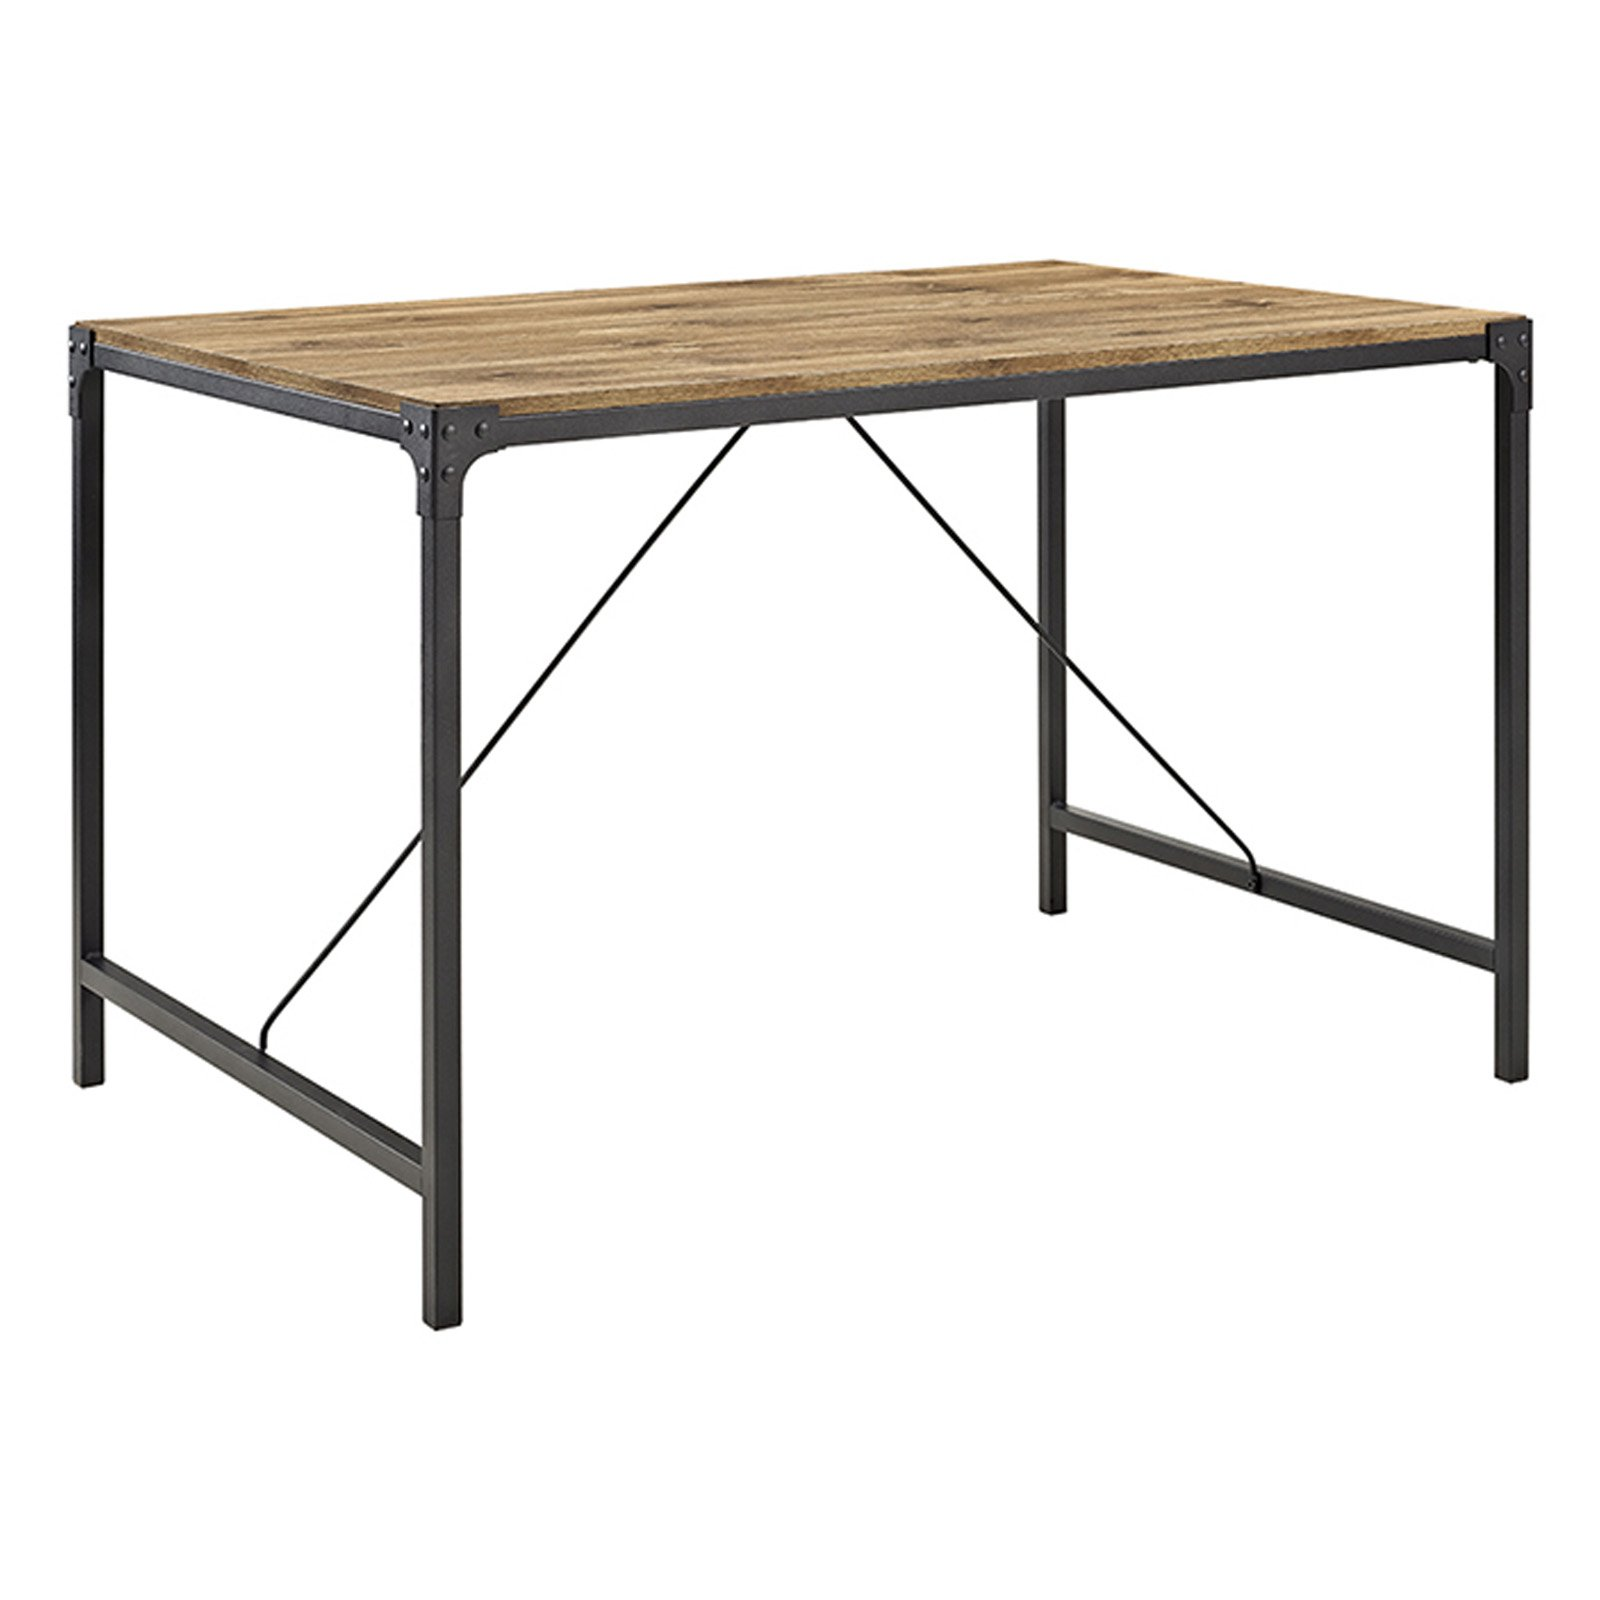 Walker Edison Angle Dining Table